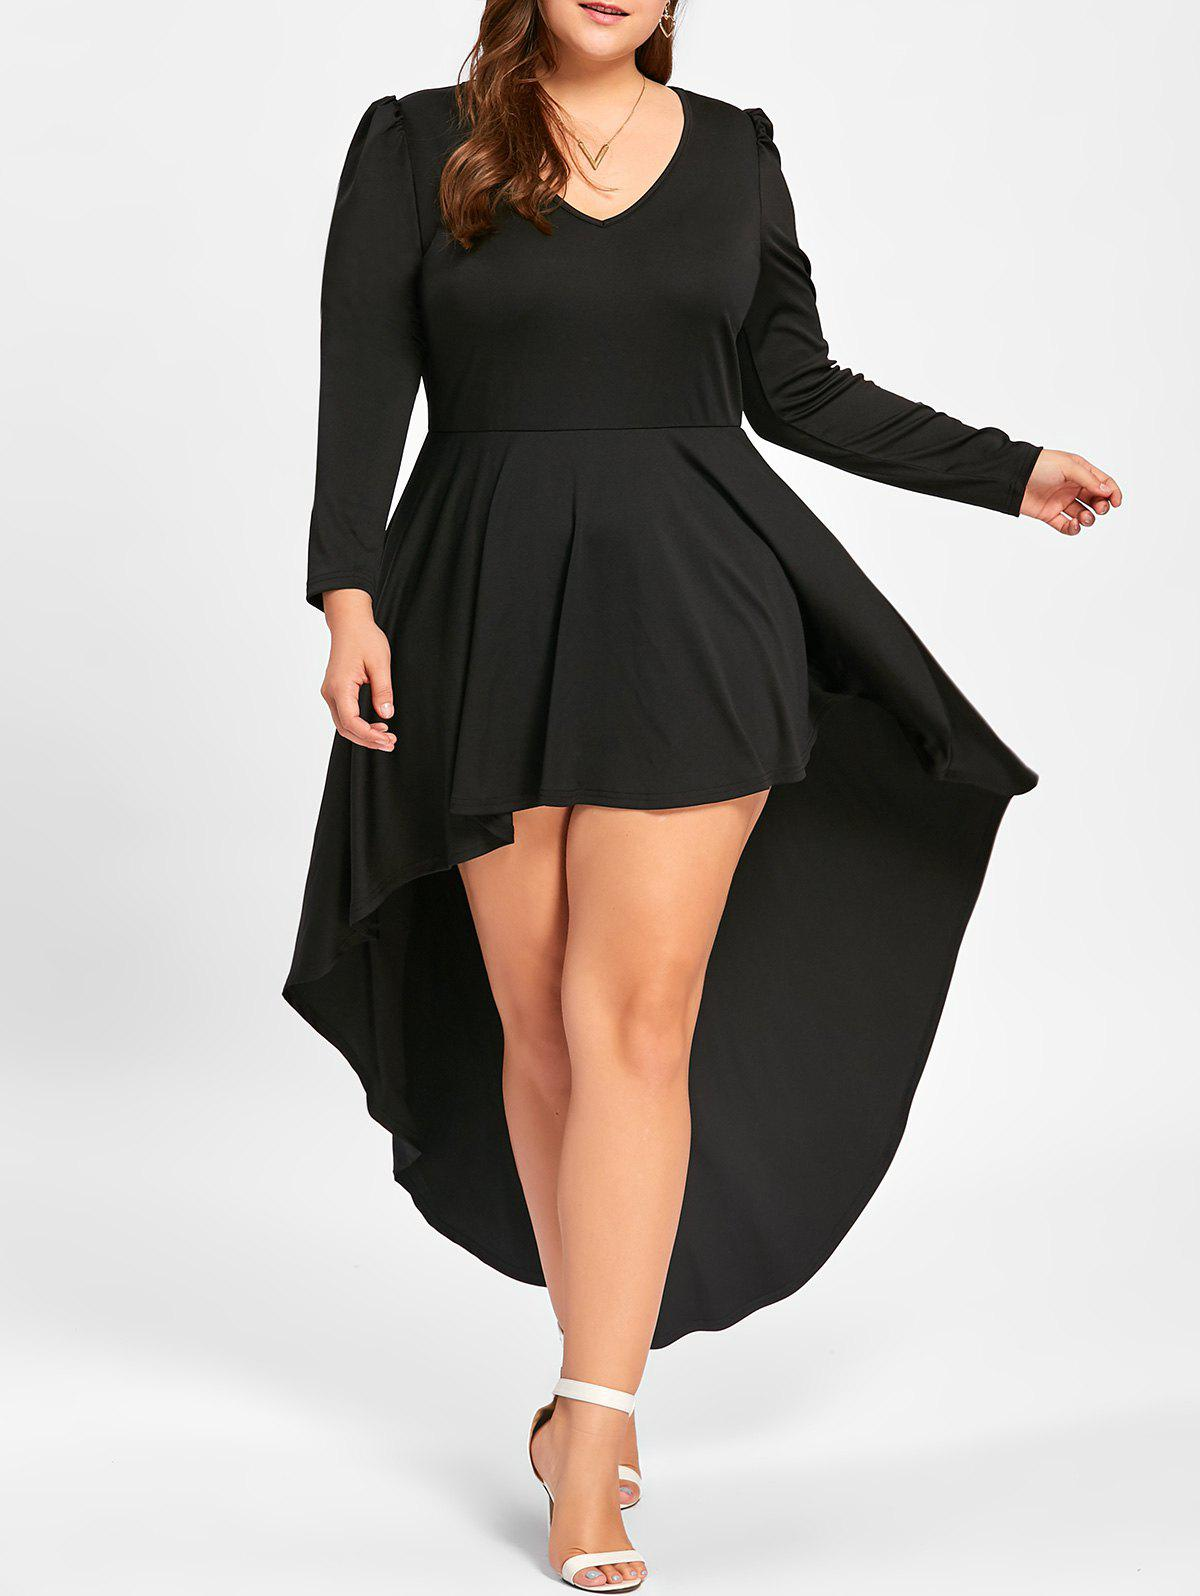 Plus Size Long Sleeve Cocktail DressWOMEN<br><br>Size: 4XL; Color: BLACK; Style: Club; Material: Polyester,Spandex; Silhouette: A-Line; Dresses Length: Ankle-Length; Neckline: V-Neck; Sleeve Length: Long Sleeves; Pattern Type: Solid Color; With Belt: No; Season: Fall,Spring; Weight: 0.4500kg; Package Contents: 1 x Dress;